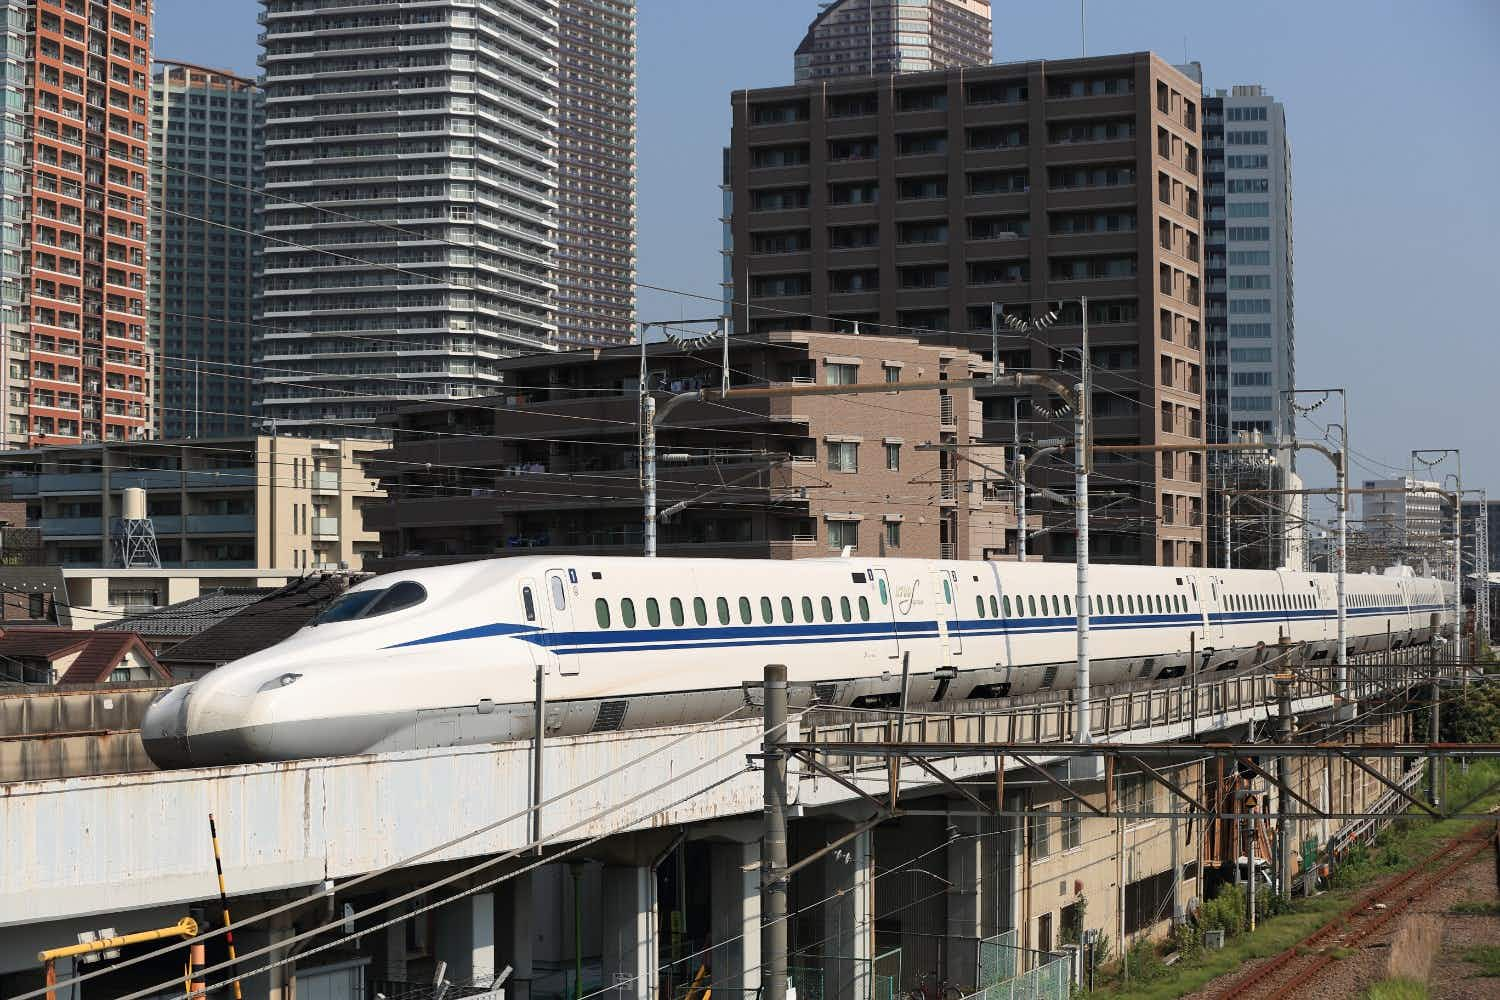 One of Japan's new bullet trains is so fast, it broke a speed record